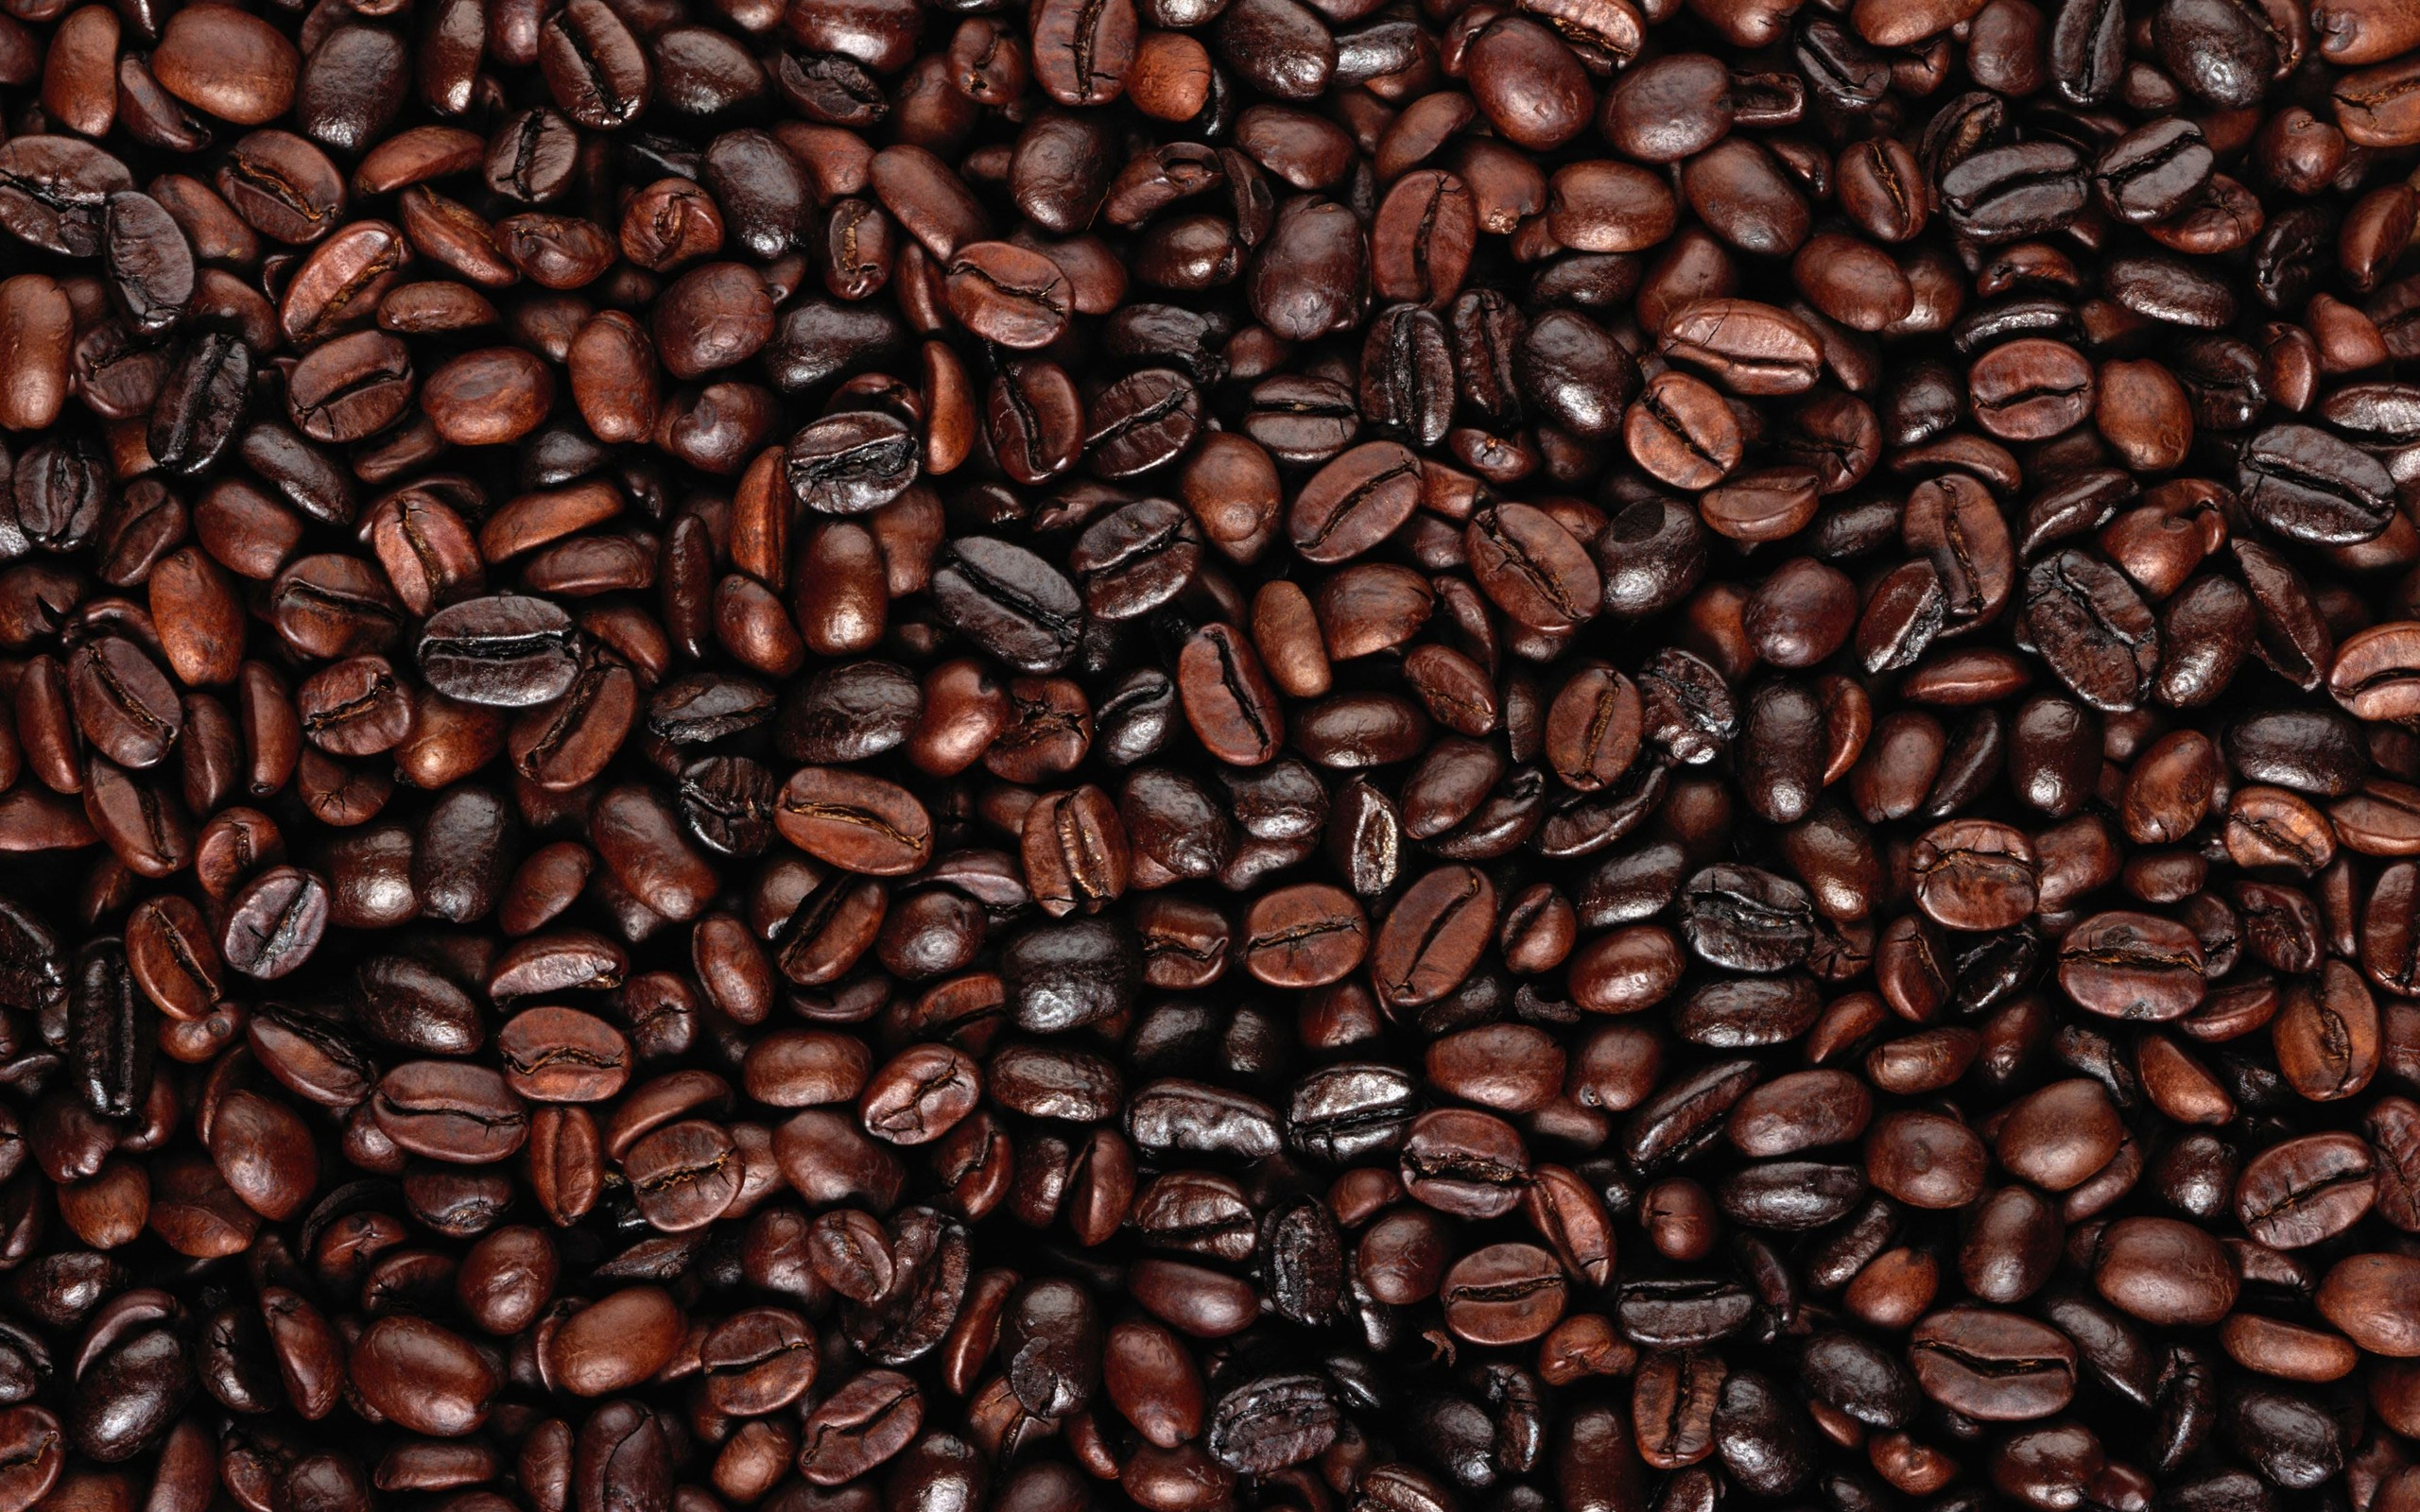 Coffee Background Wallpaper - WallpaperSafari